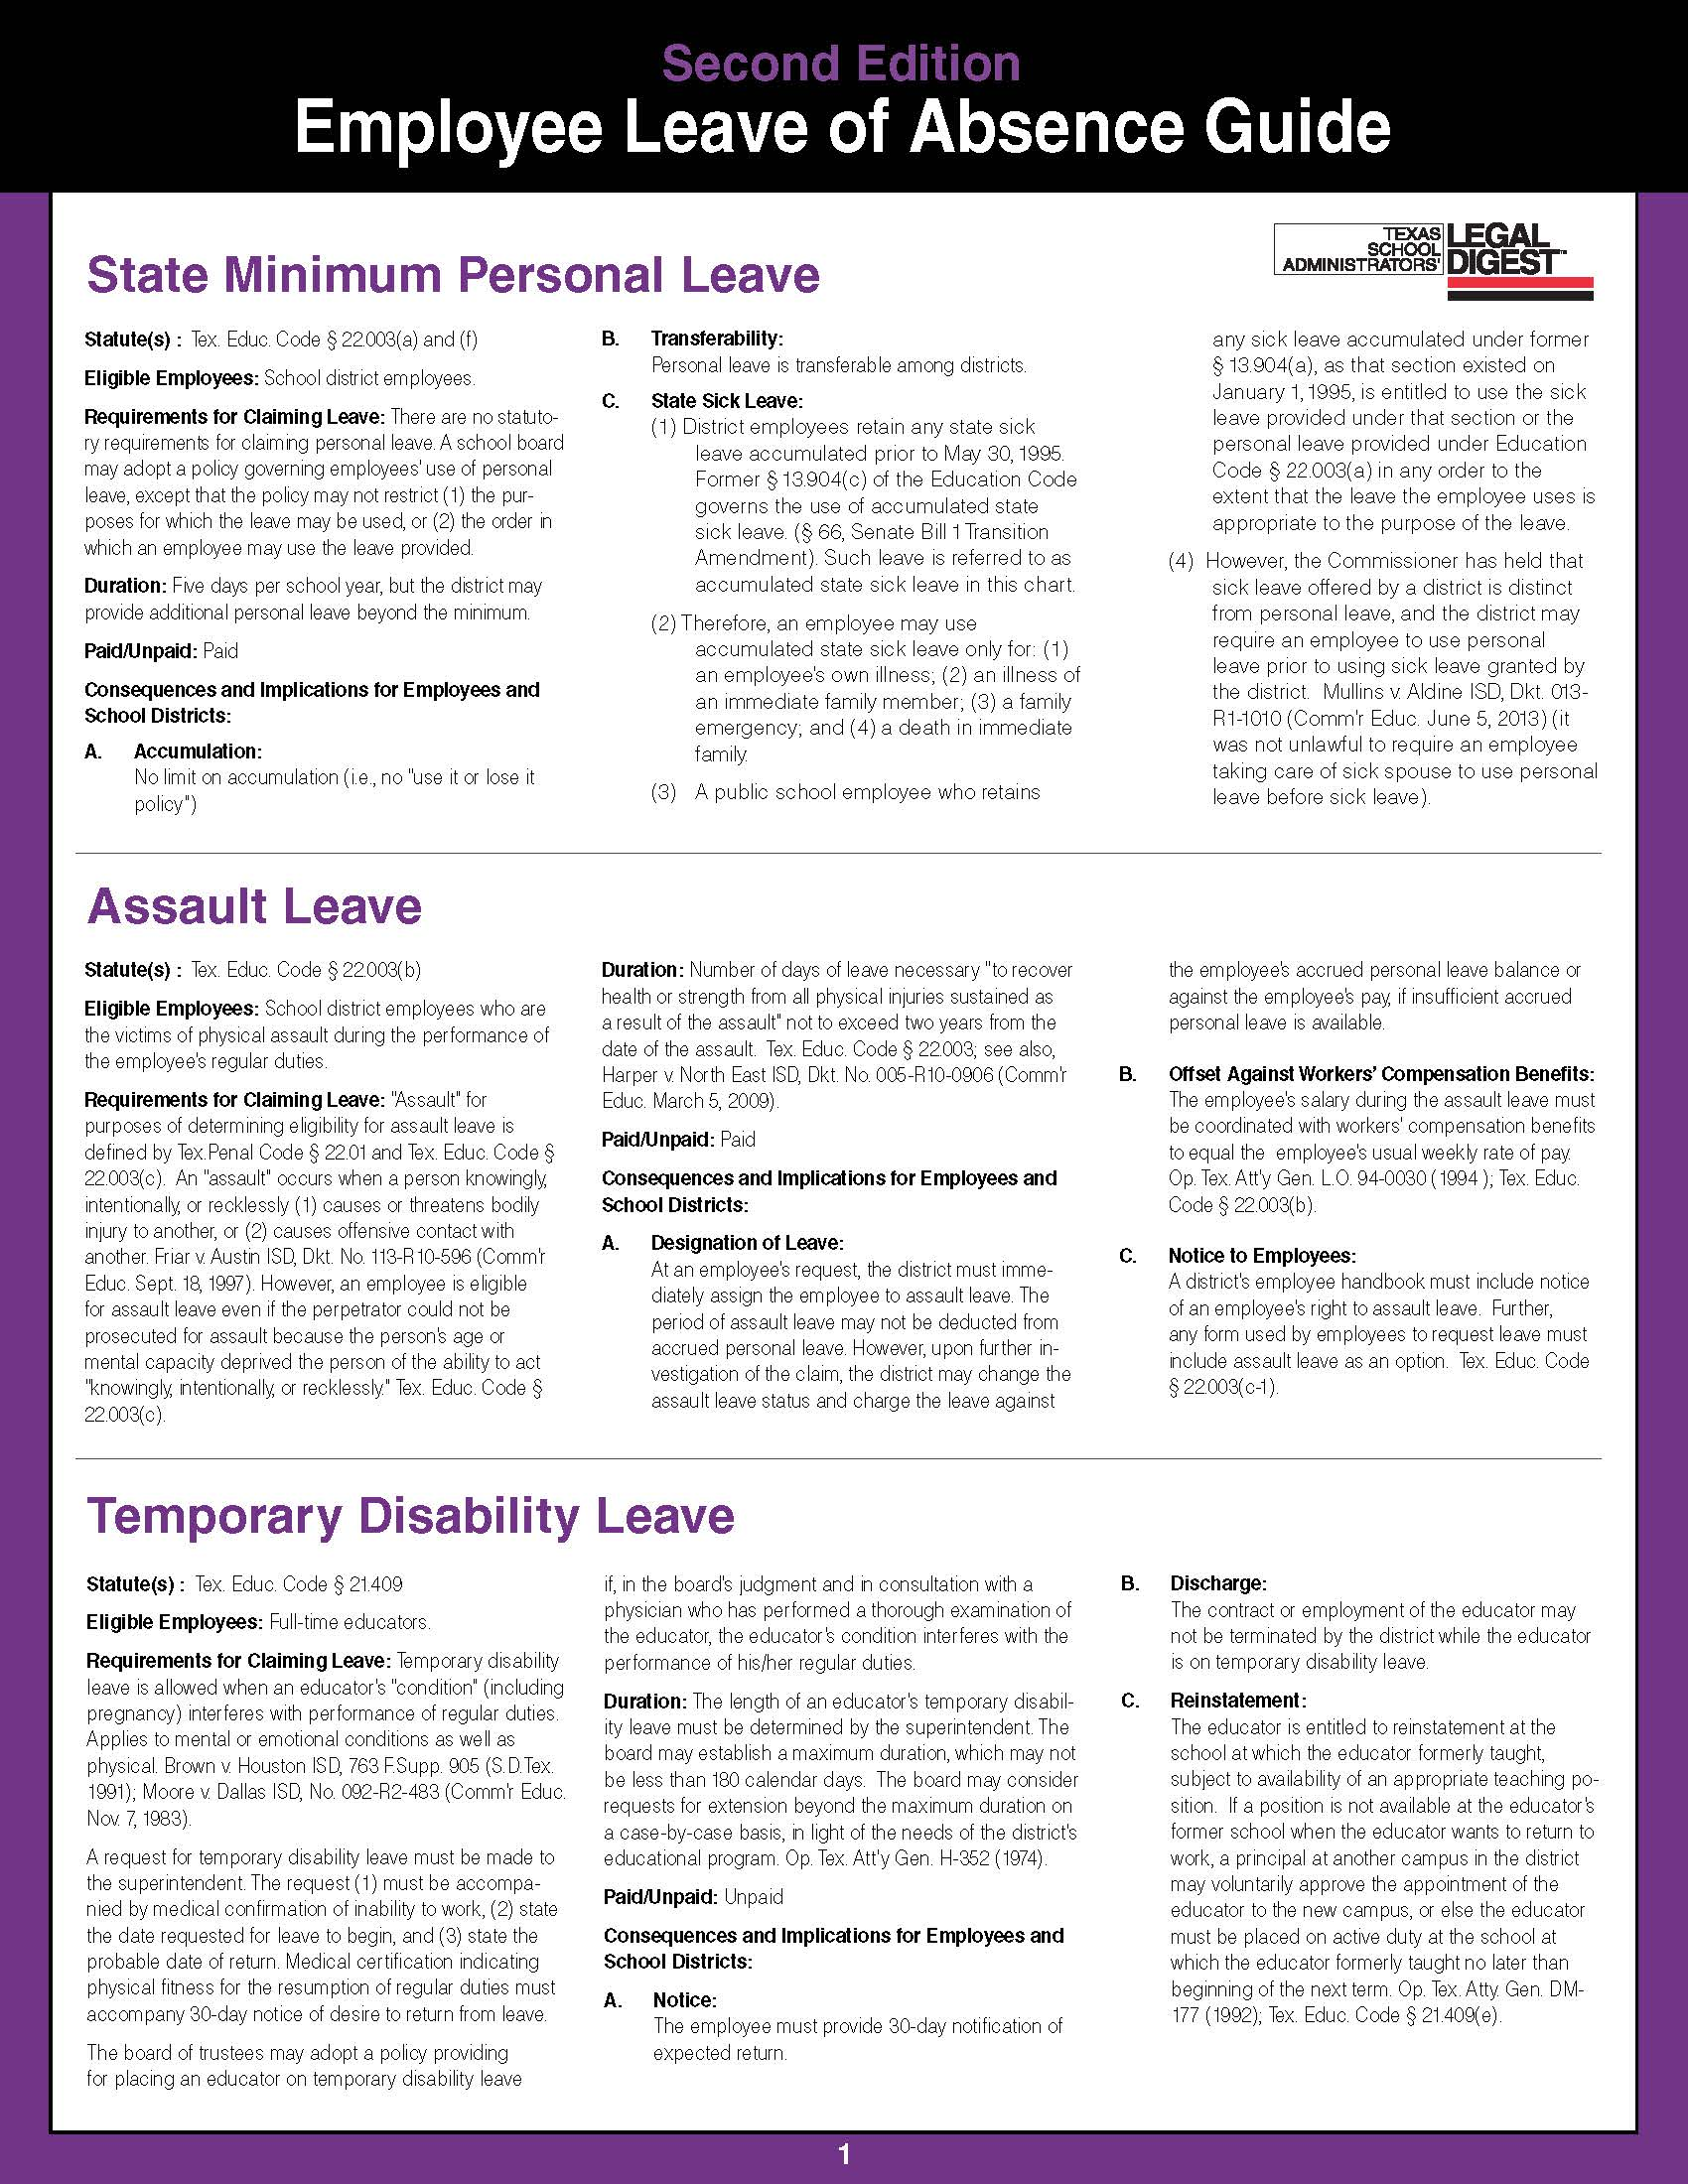 employee leave of absence guide education 311